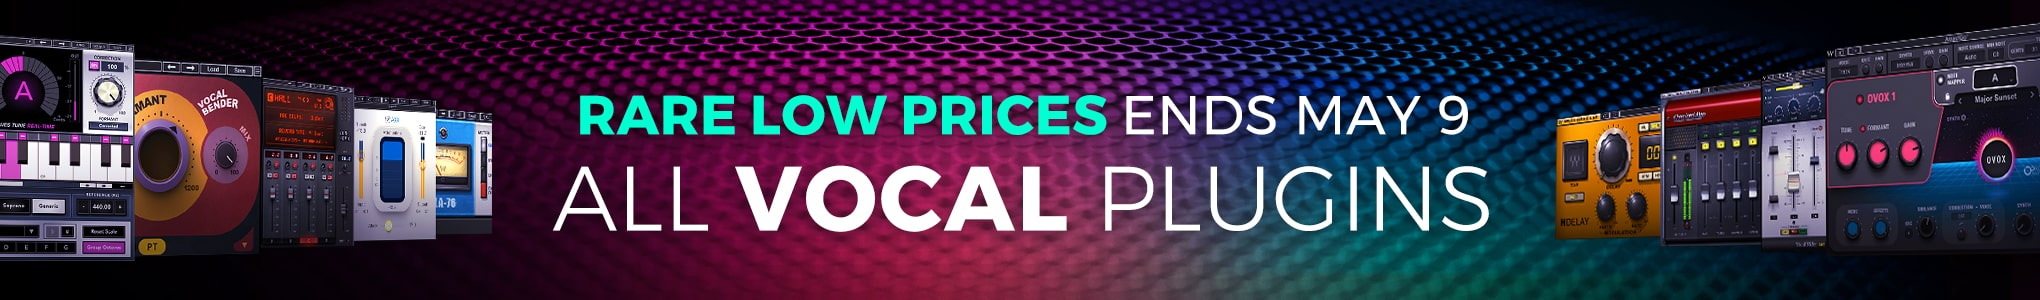 ENDS MAY 9: Flash Sale – All Vocal Plugins at Rare Low Prices